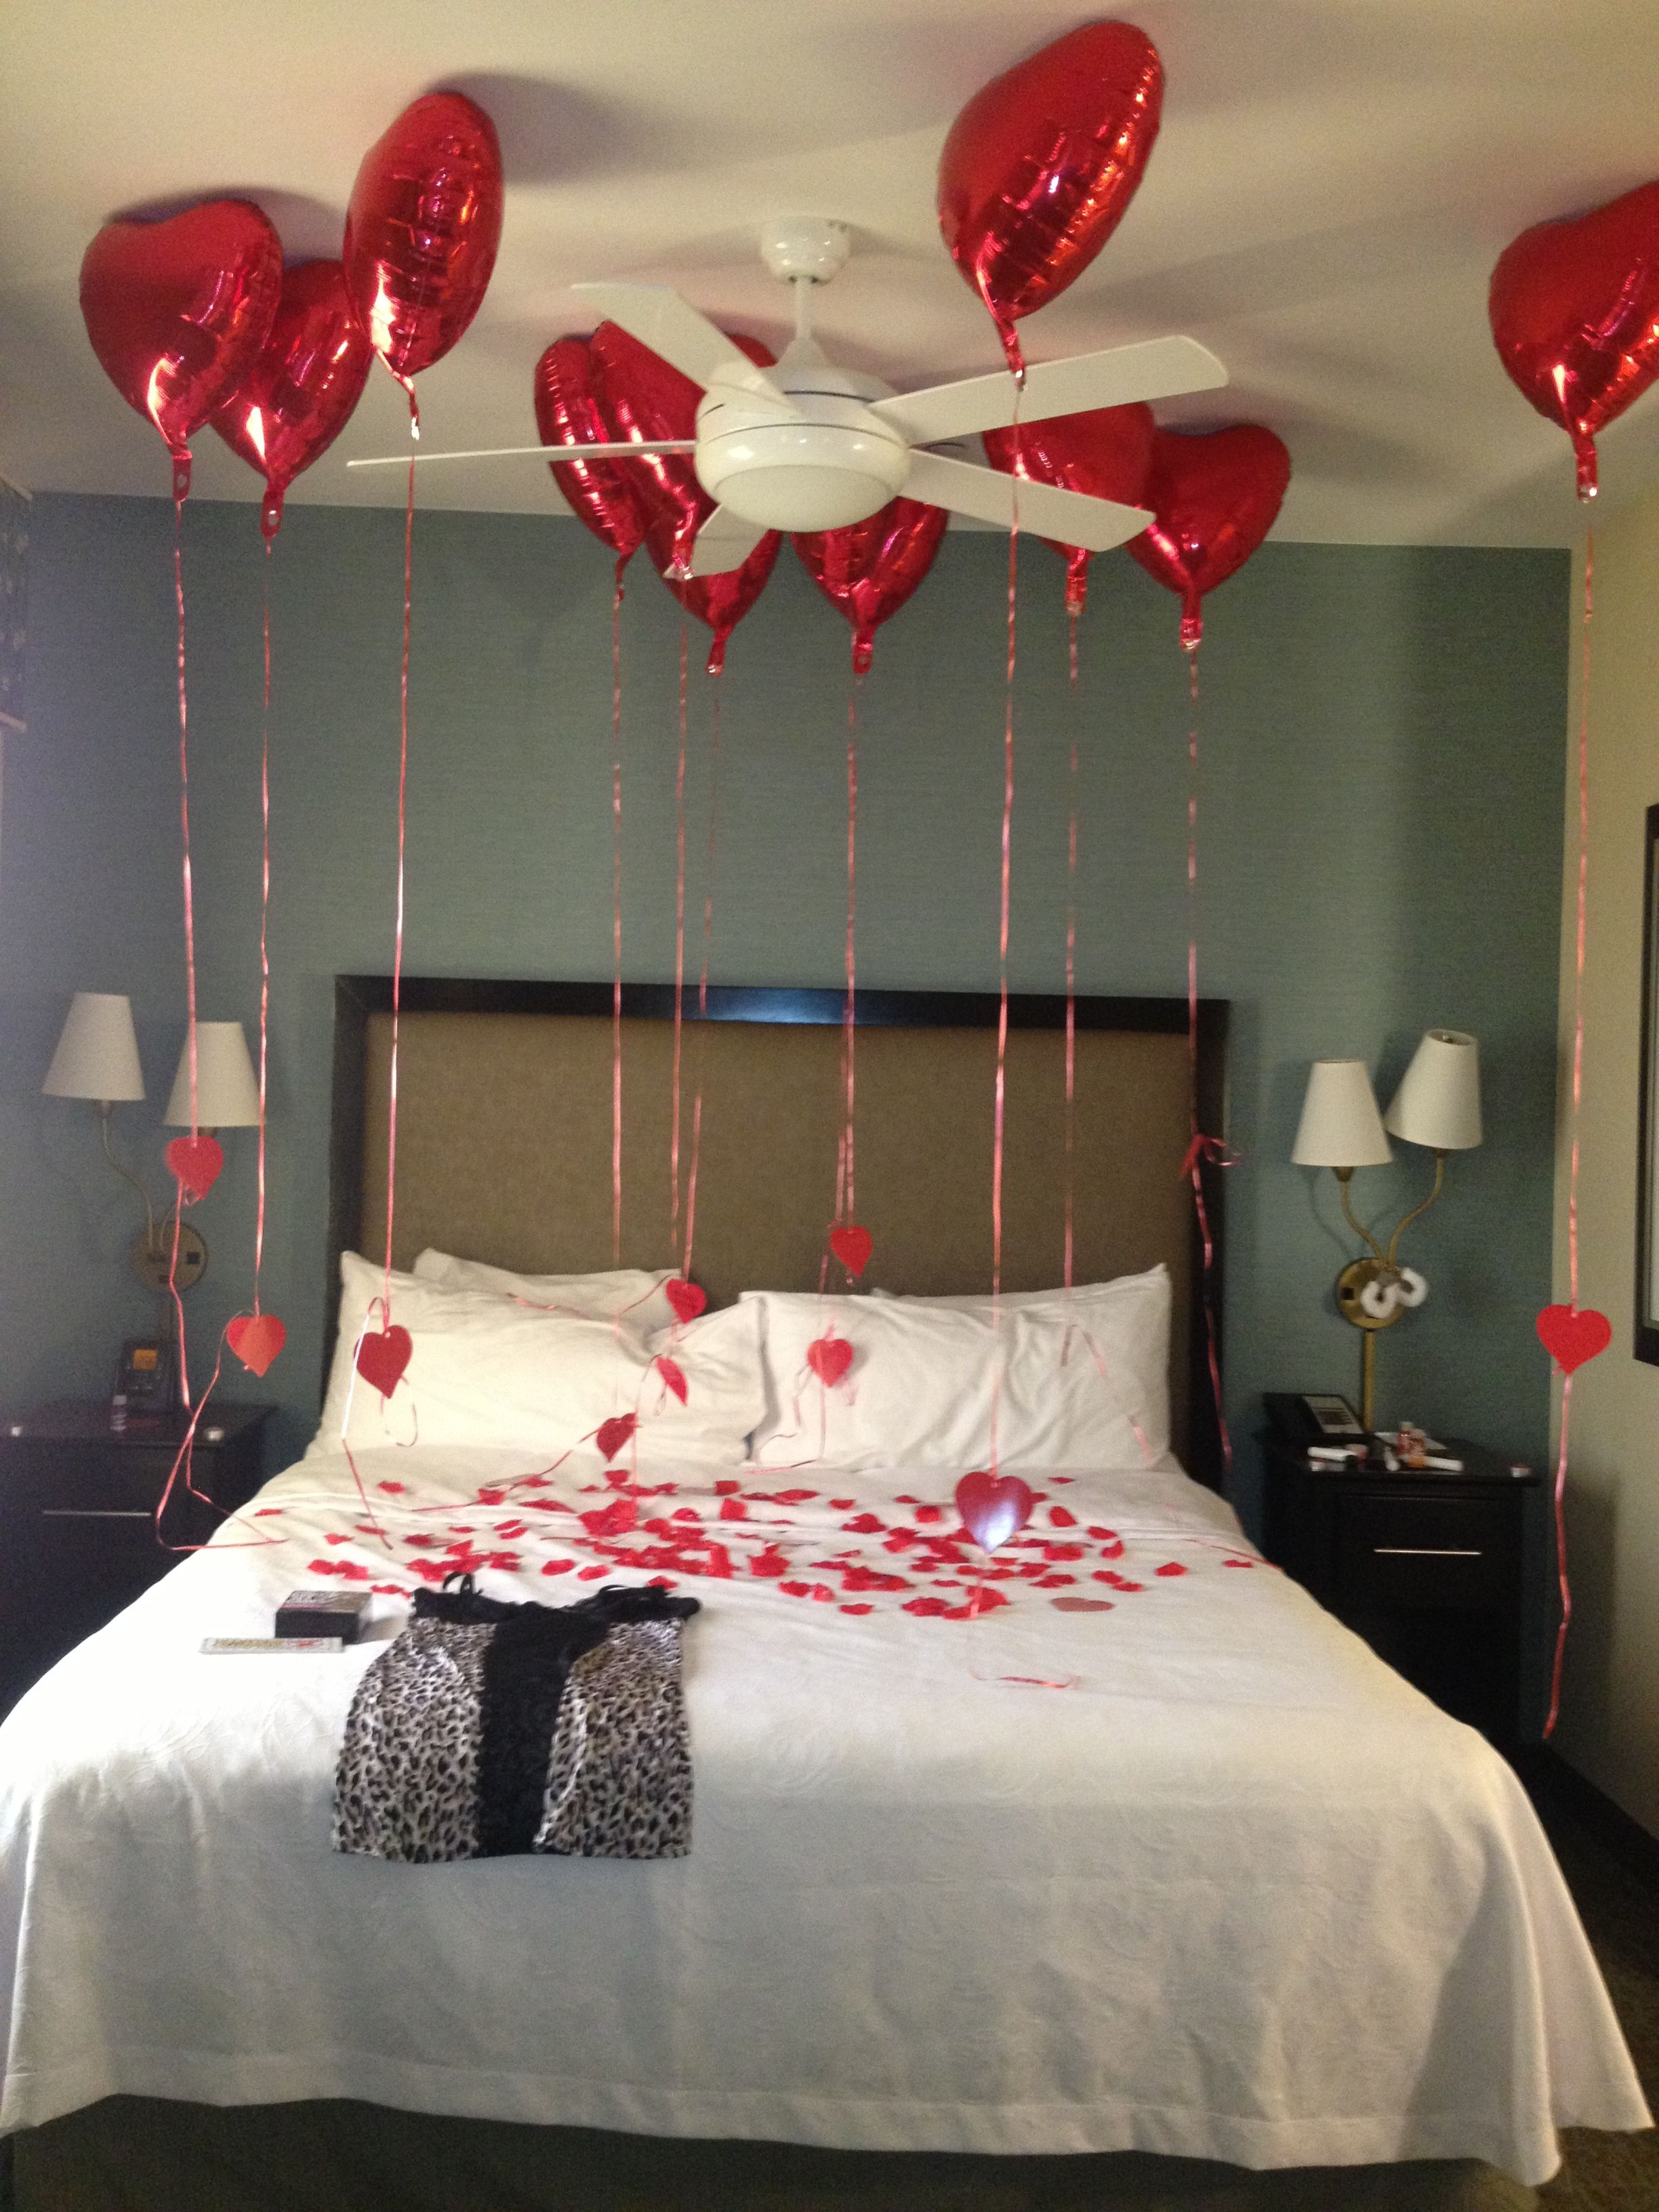 Valentines Surprise Hotel Room For Boyfriend Or Hubby He